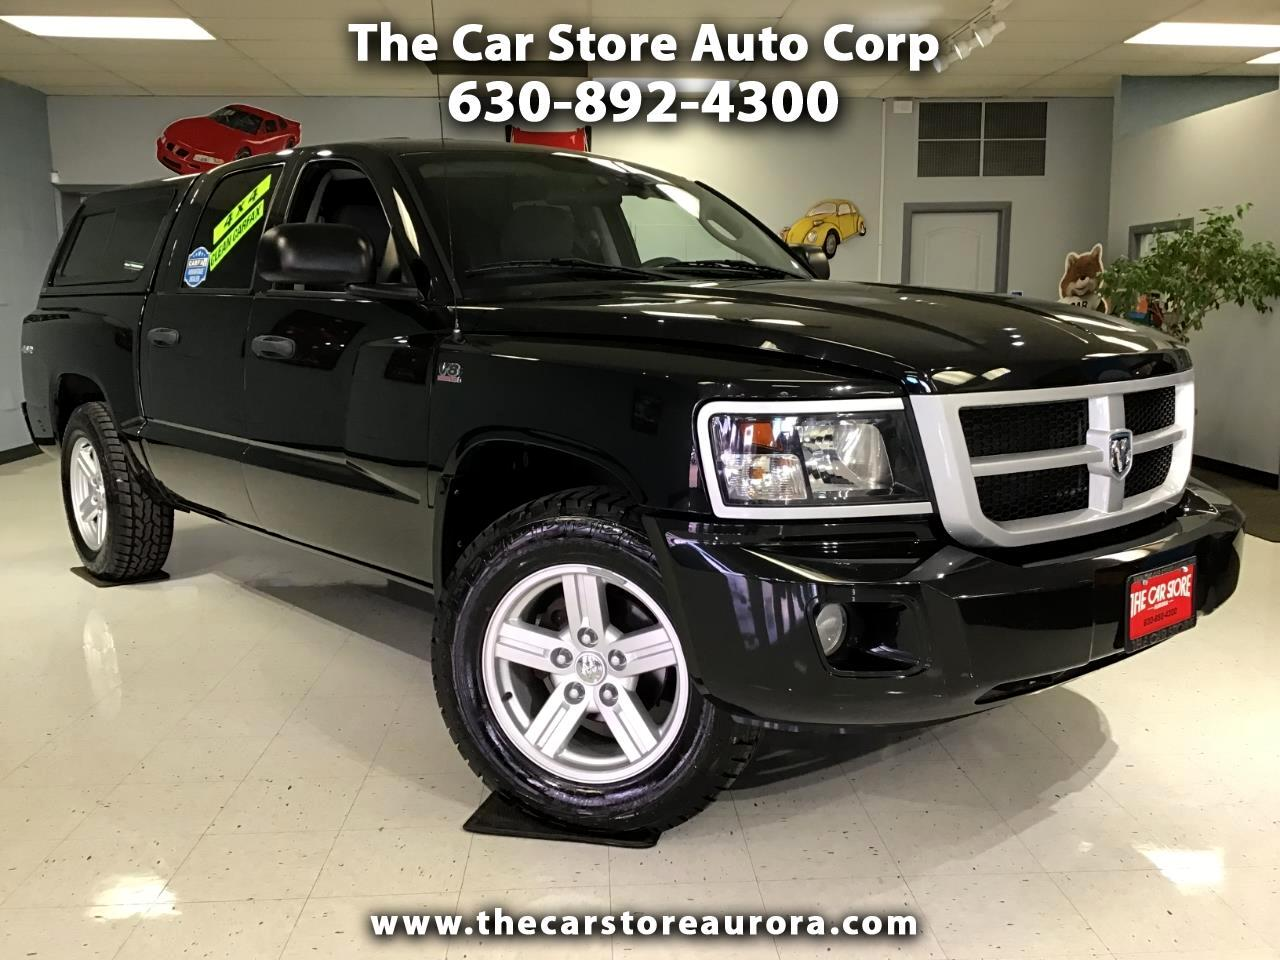 2011 Dodge Dakota Big Horn Crew Cab 4WD